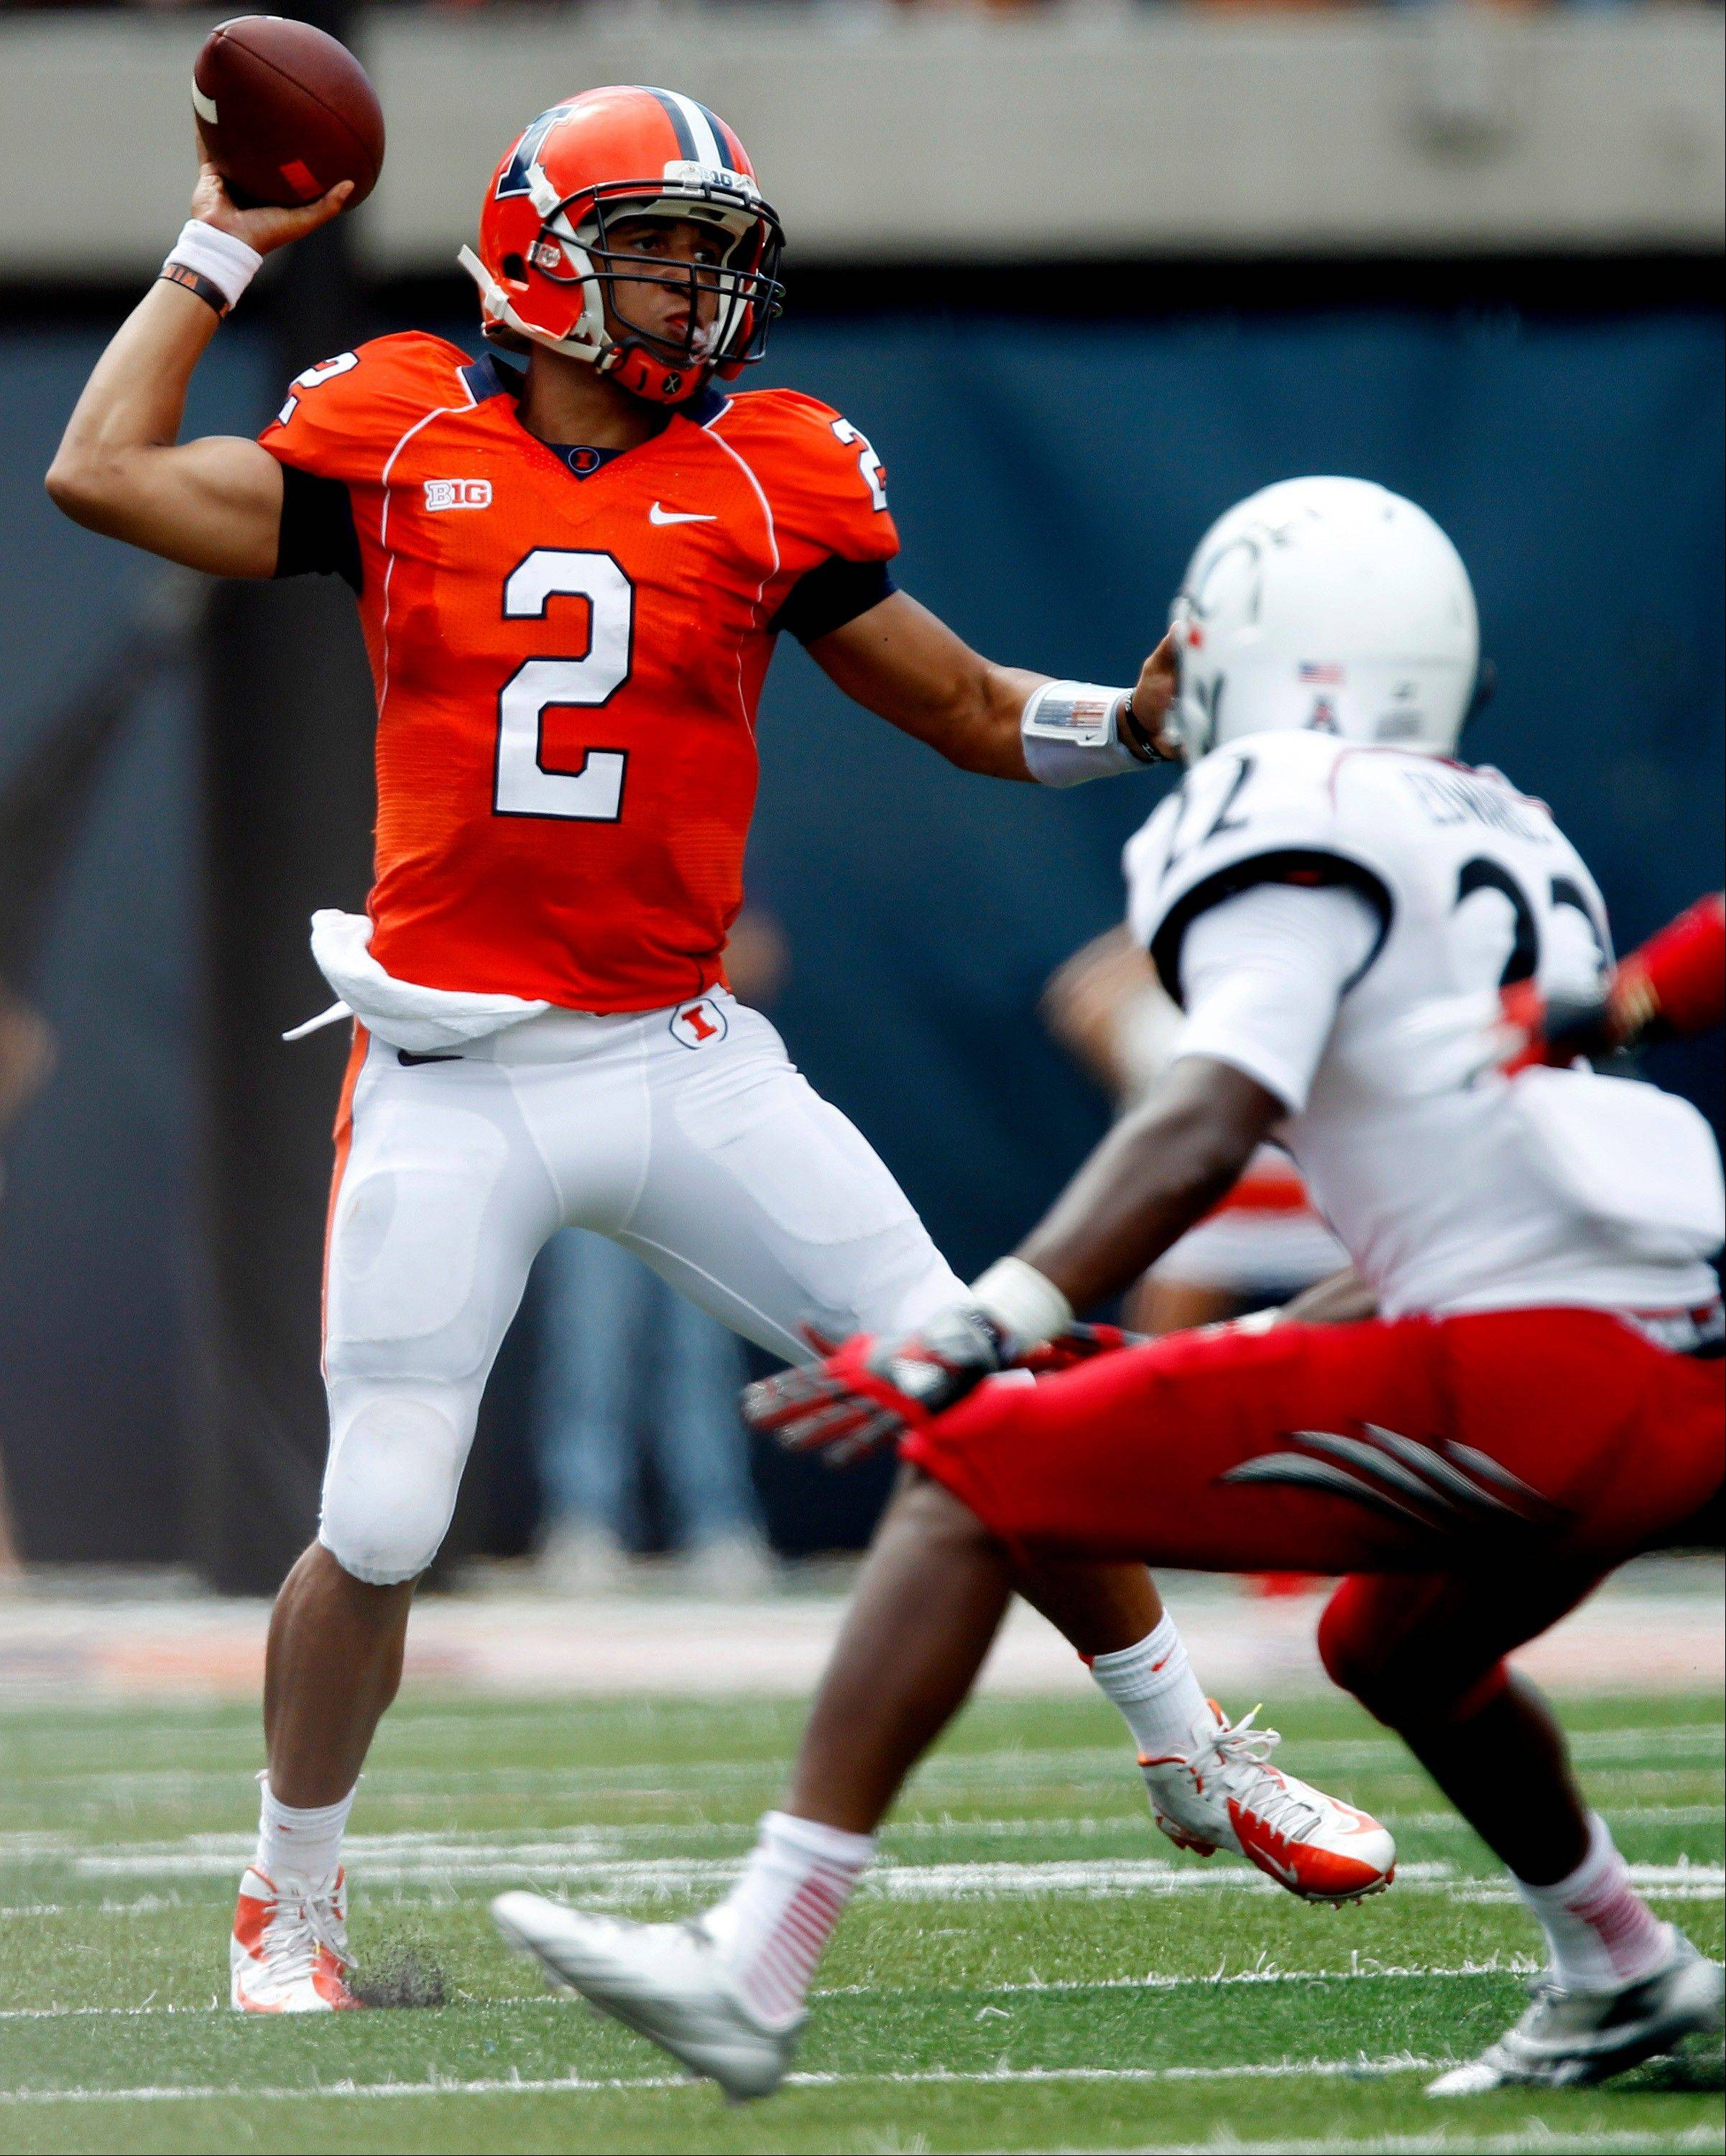 Illinois quarterback Nathan Scheelhaase throws past Cincinnati safety Zach Edwards during last week's game in Champaign. Scheelhaase is off to his best start in his four seasons as a starter at Illinois.